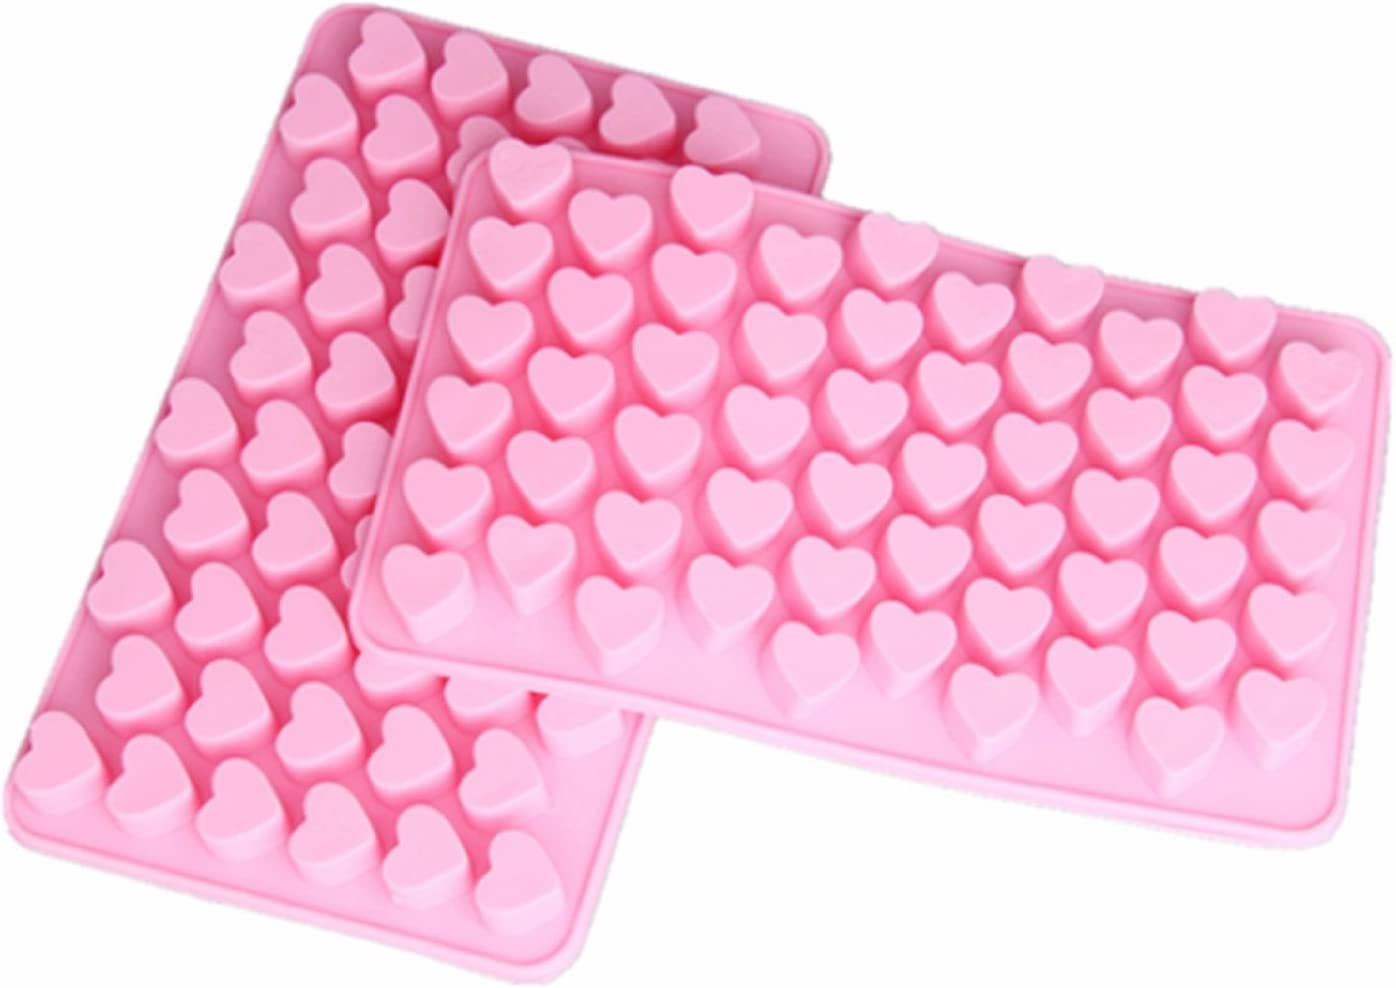 Cy200Lf Silicone Mini Heart Shape Ice Cube Candy Chocolate Mold PACK OF 20